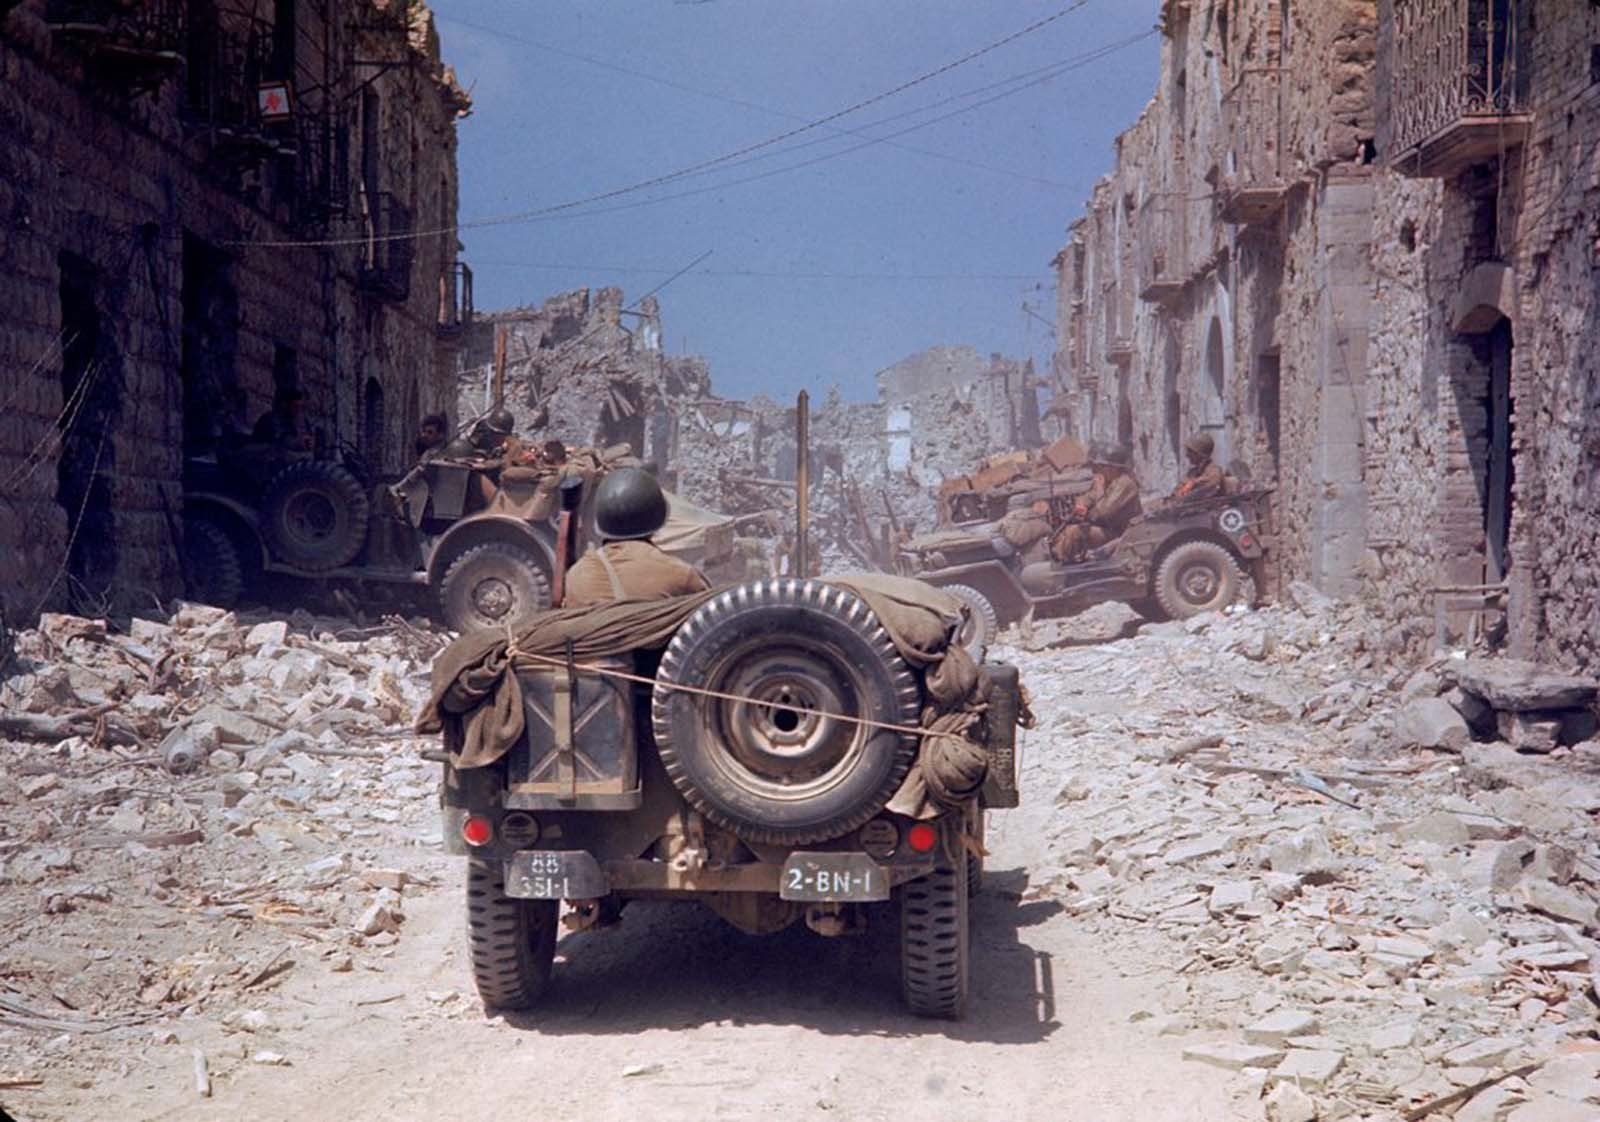 American jeeps traveled through a bombed-out town during the drive towards Rome, World War II.